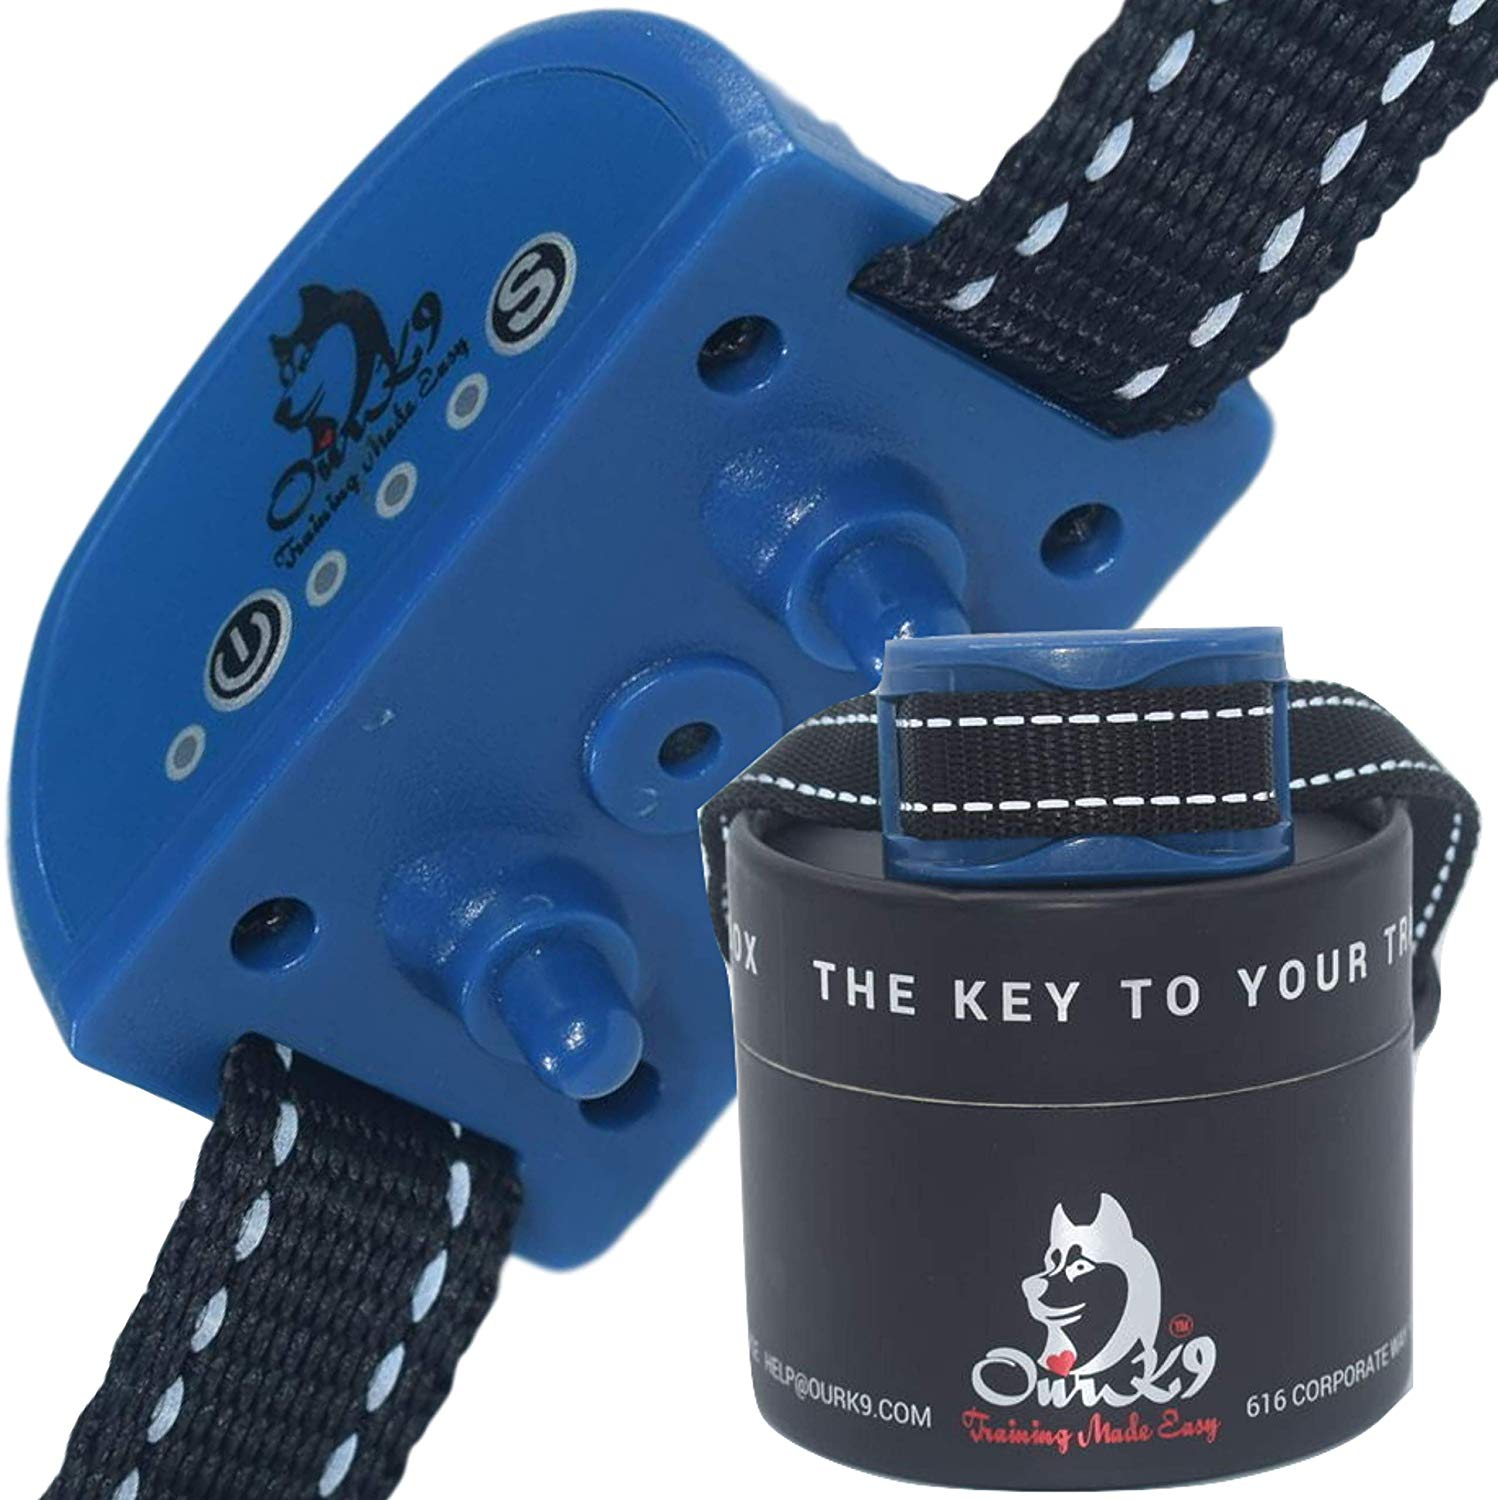 Our K9 Training Made Easy Small Dog Bark Collar | Vibration Collar | Rechargeable Bark Collar | Humane Bark Collar | Puppy Bark Collar | Bark Collar for Small Dog | Anti Barking Collar | No Shock